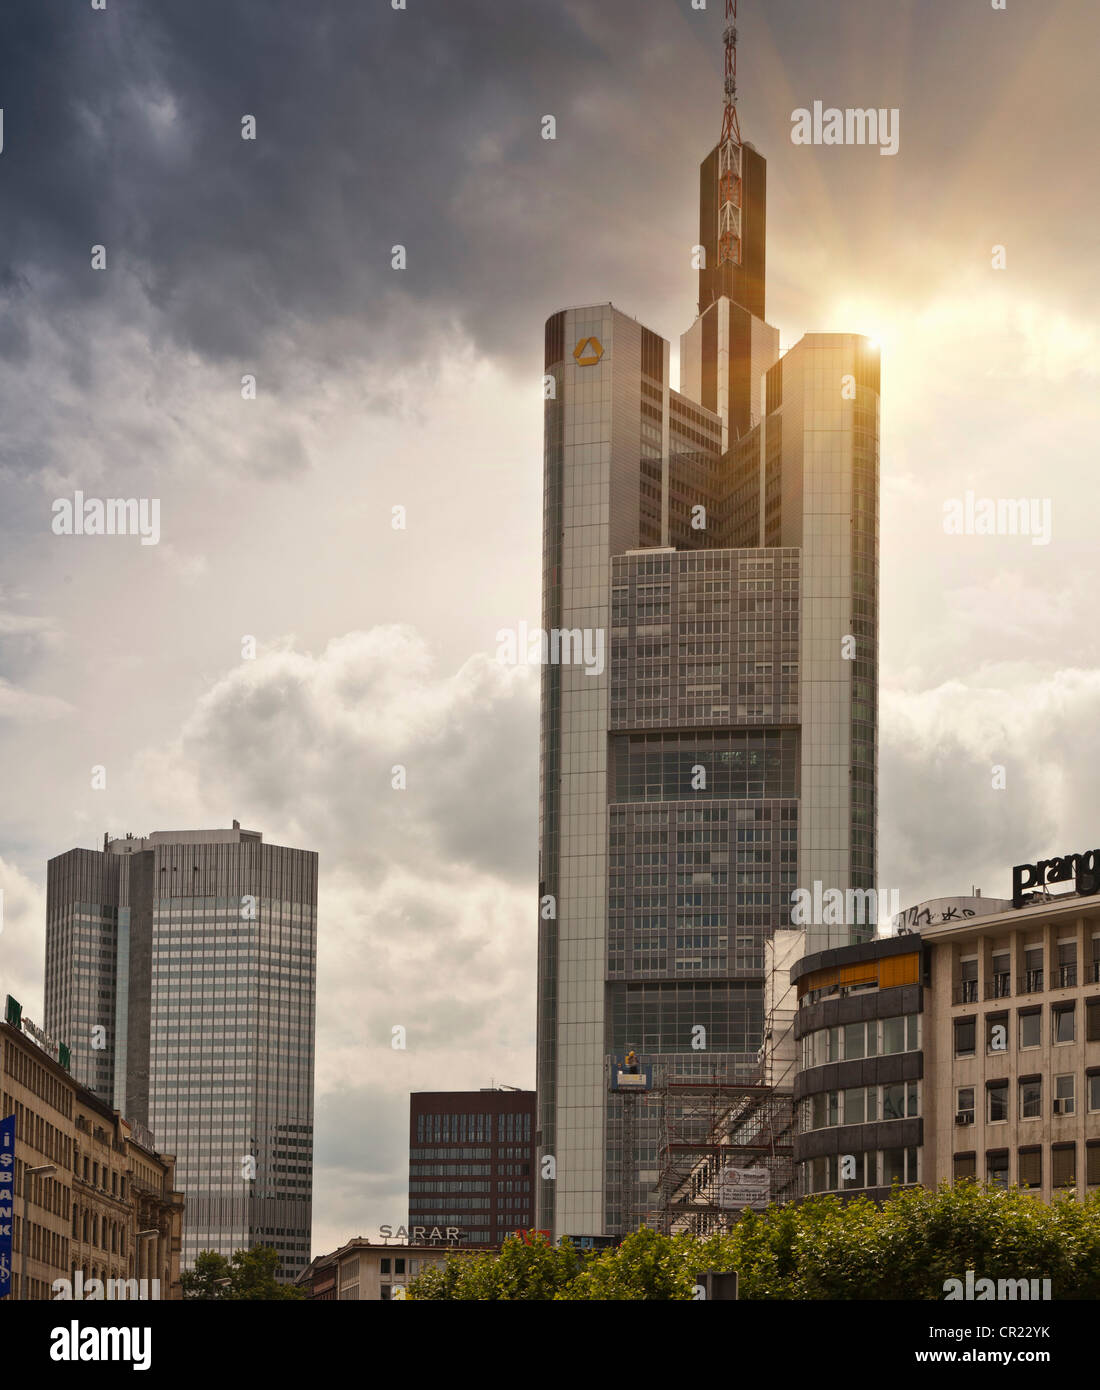 Skyscrapers in city center - Stock Image